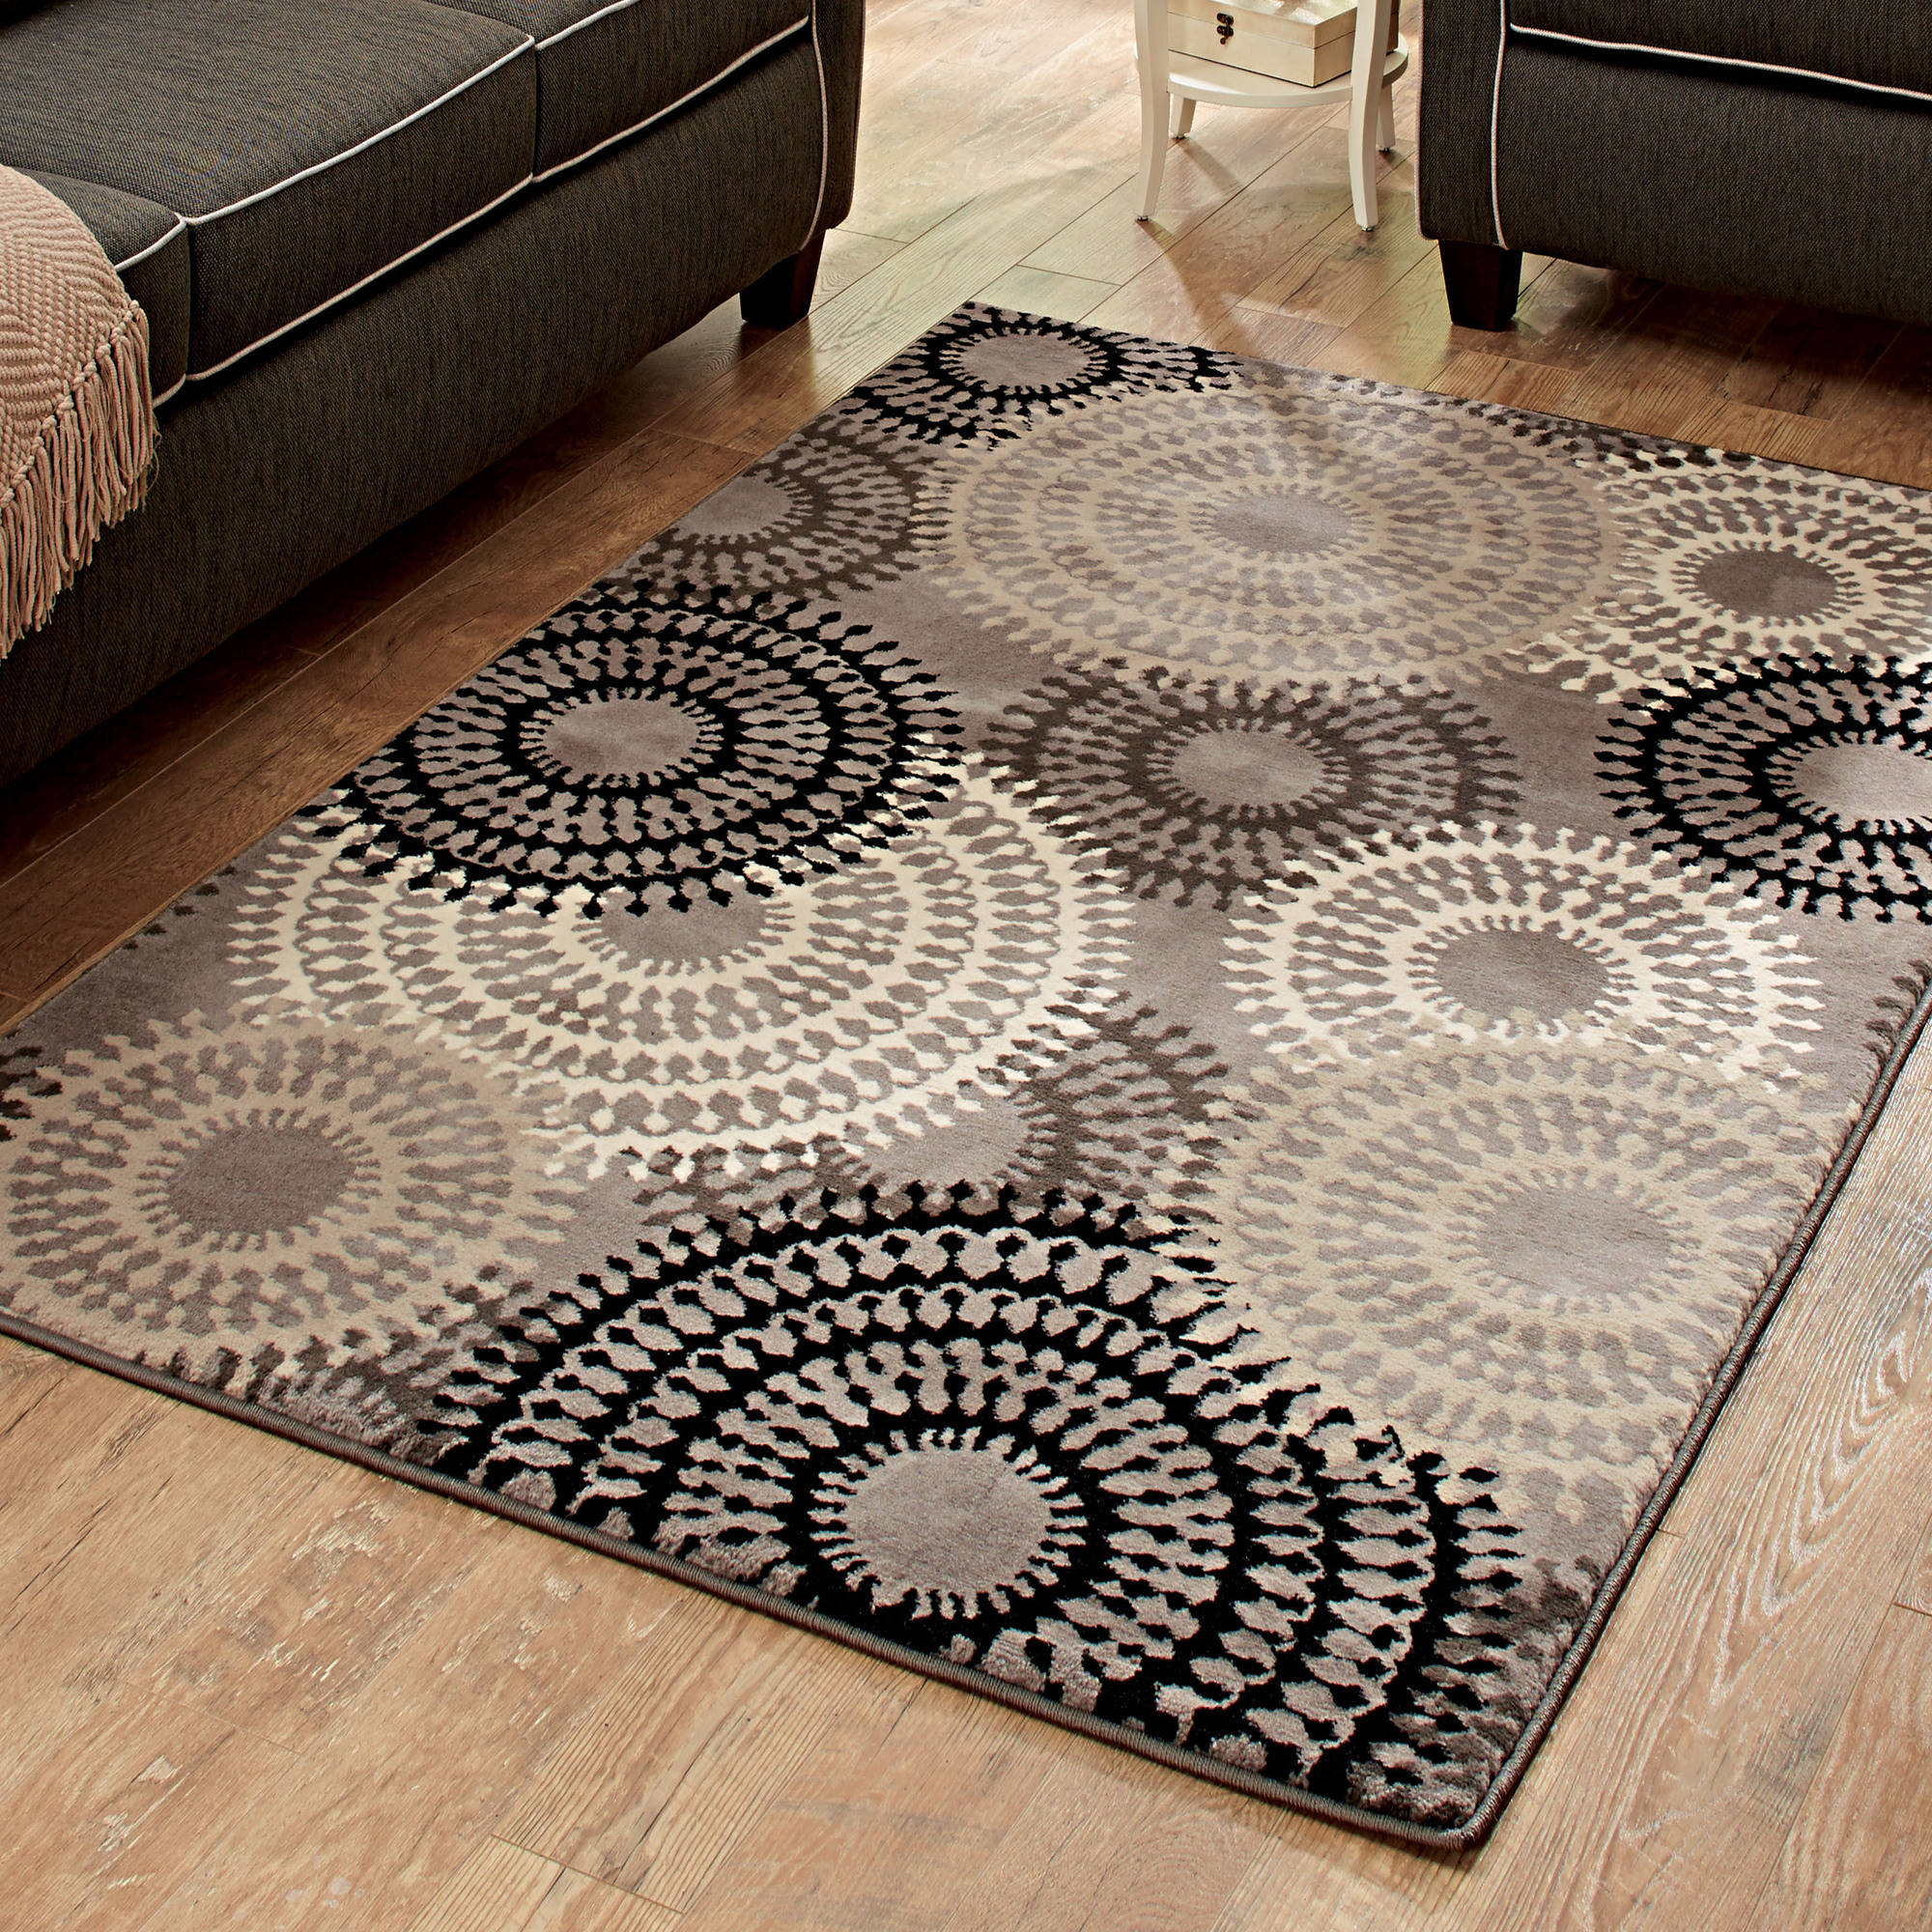 Captivating Better Homes Or Gardens Taupe Ornate Circles Area Rug Or Runner    Walmart.com